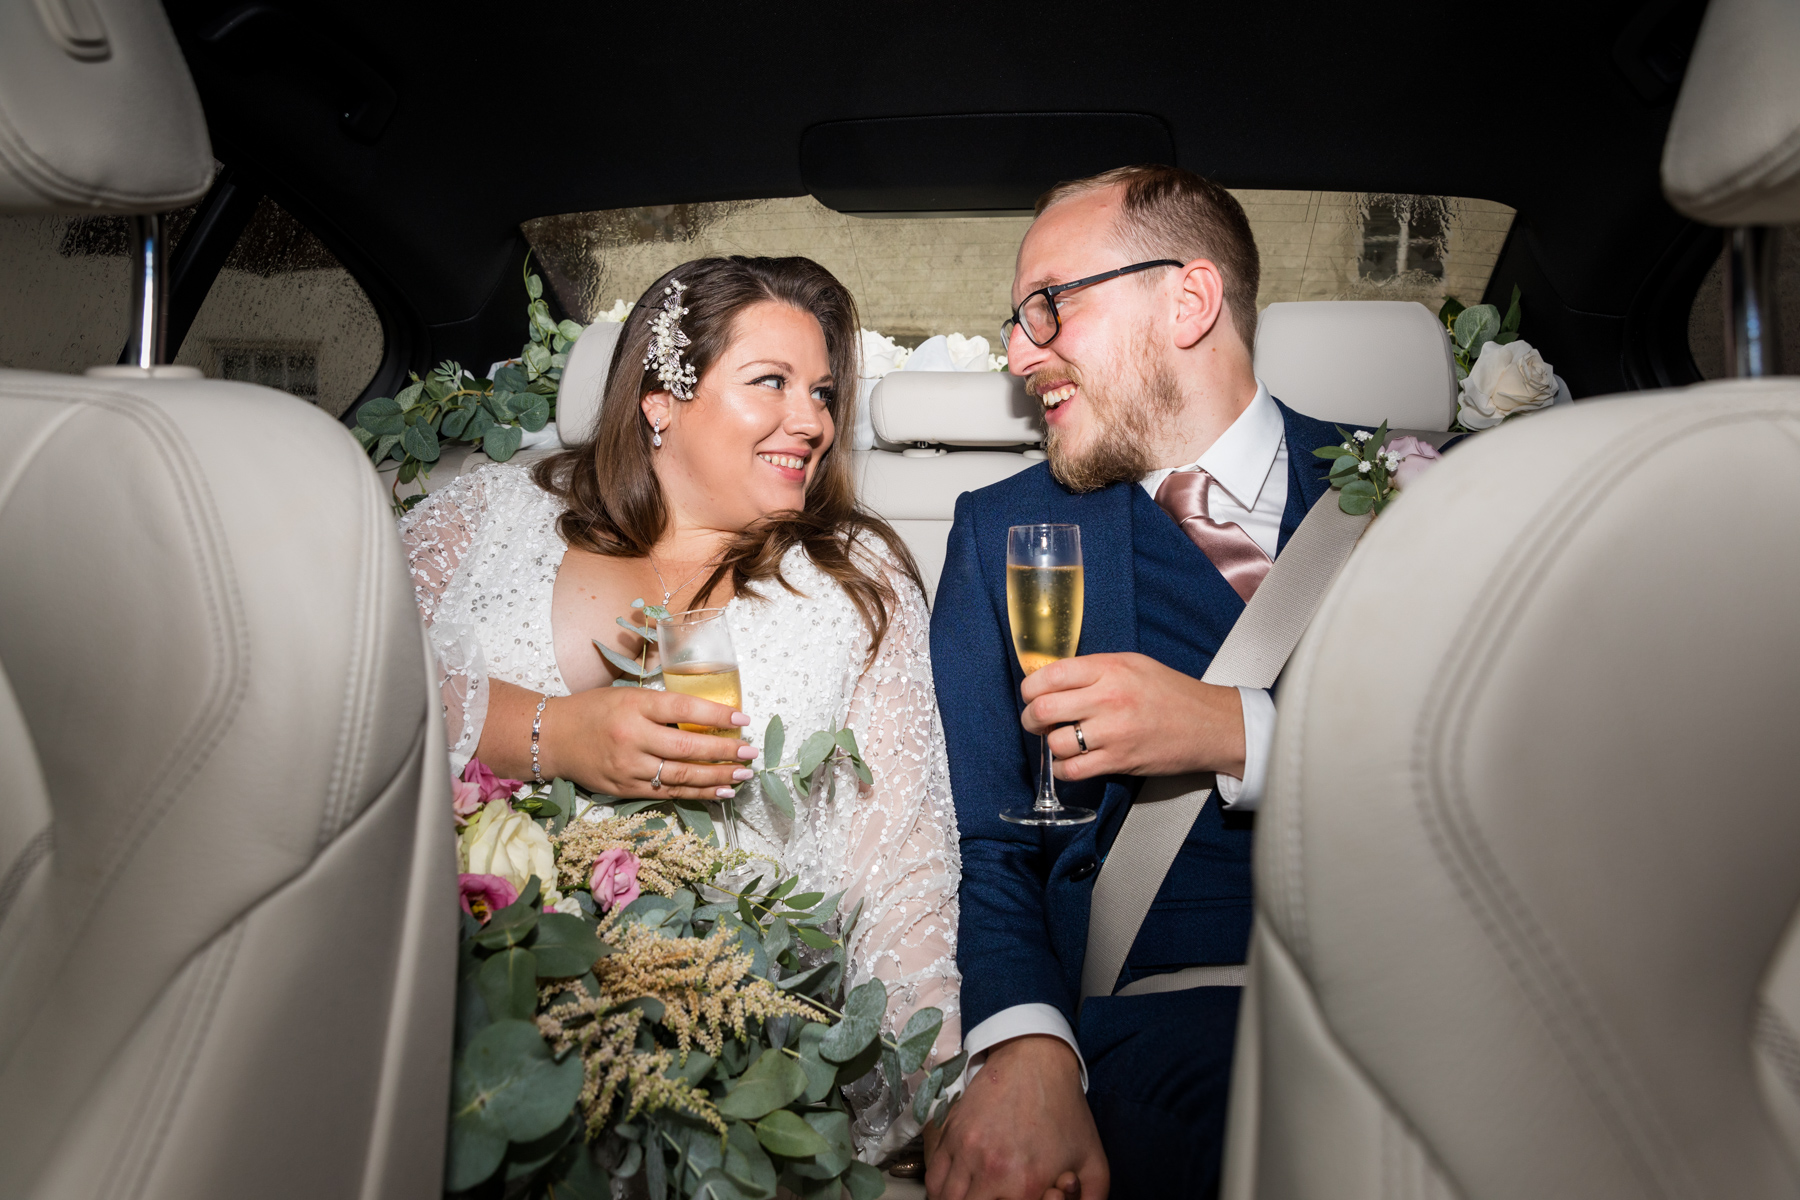 Bride and groom in the wedding car